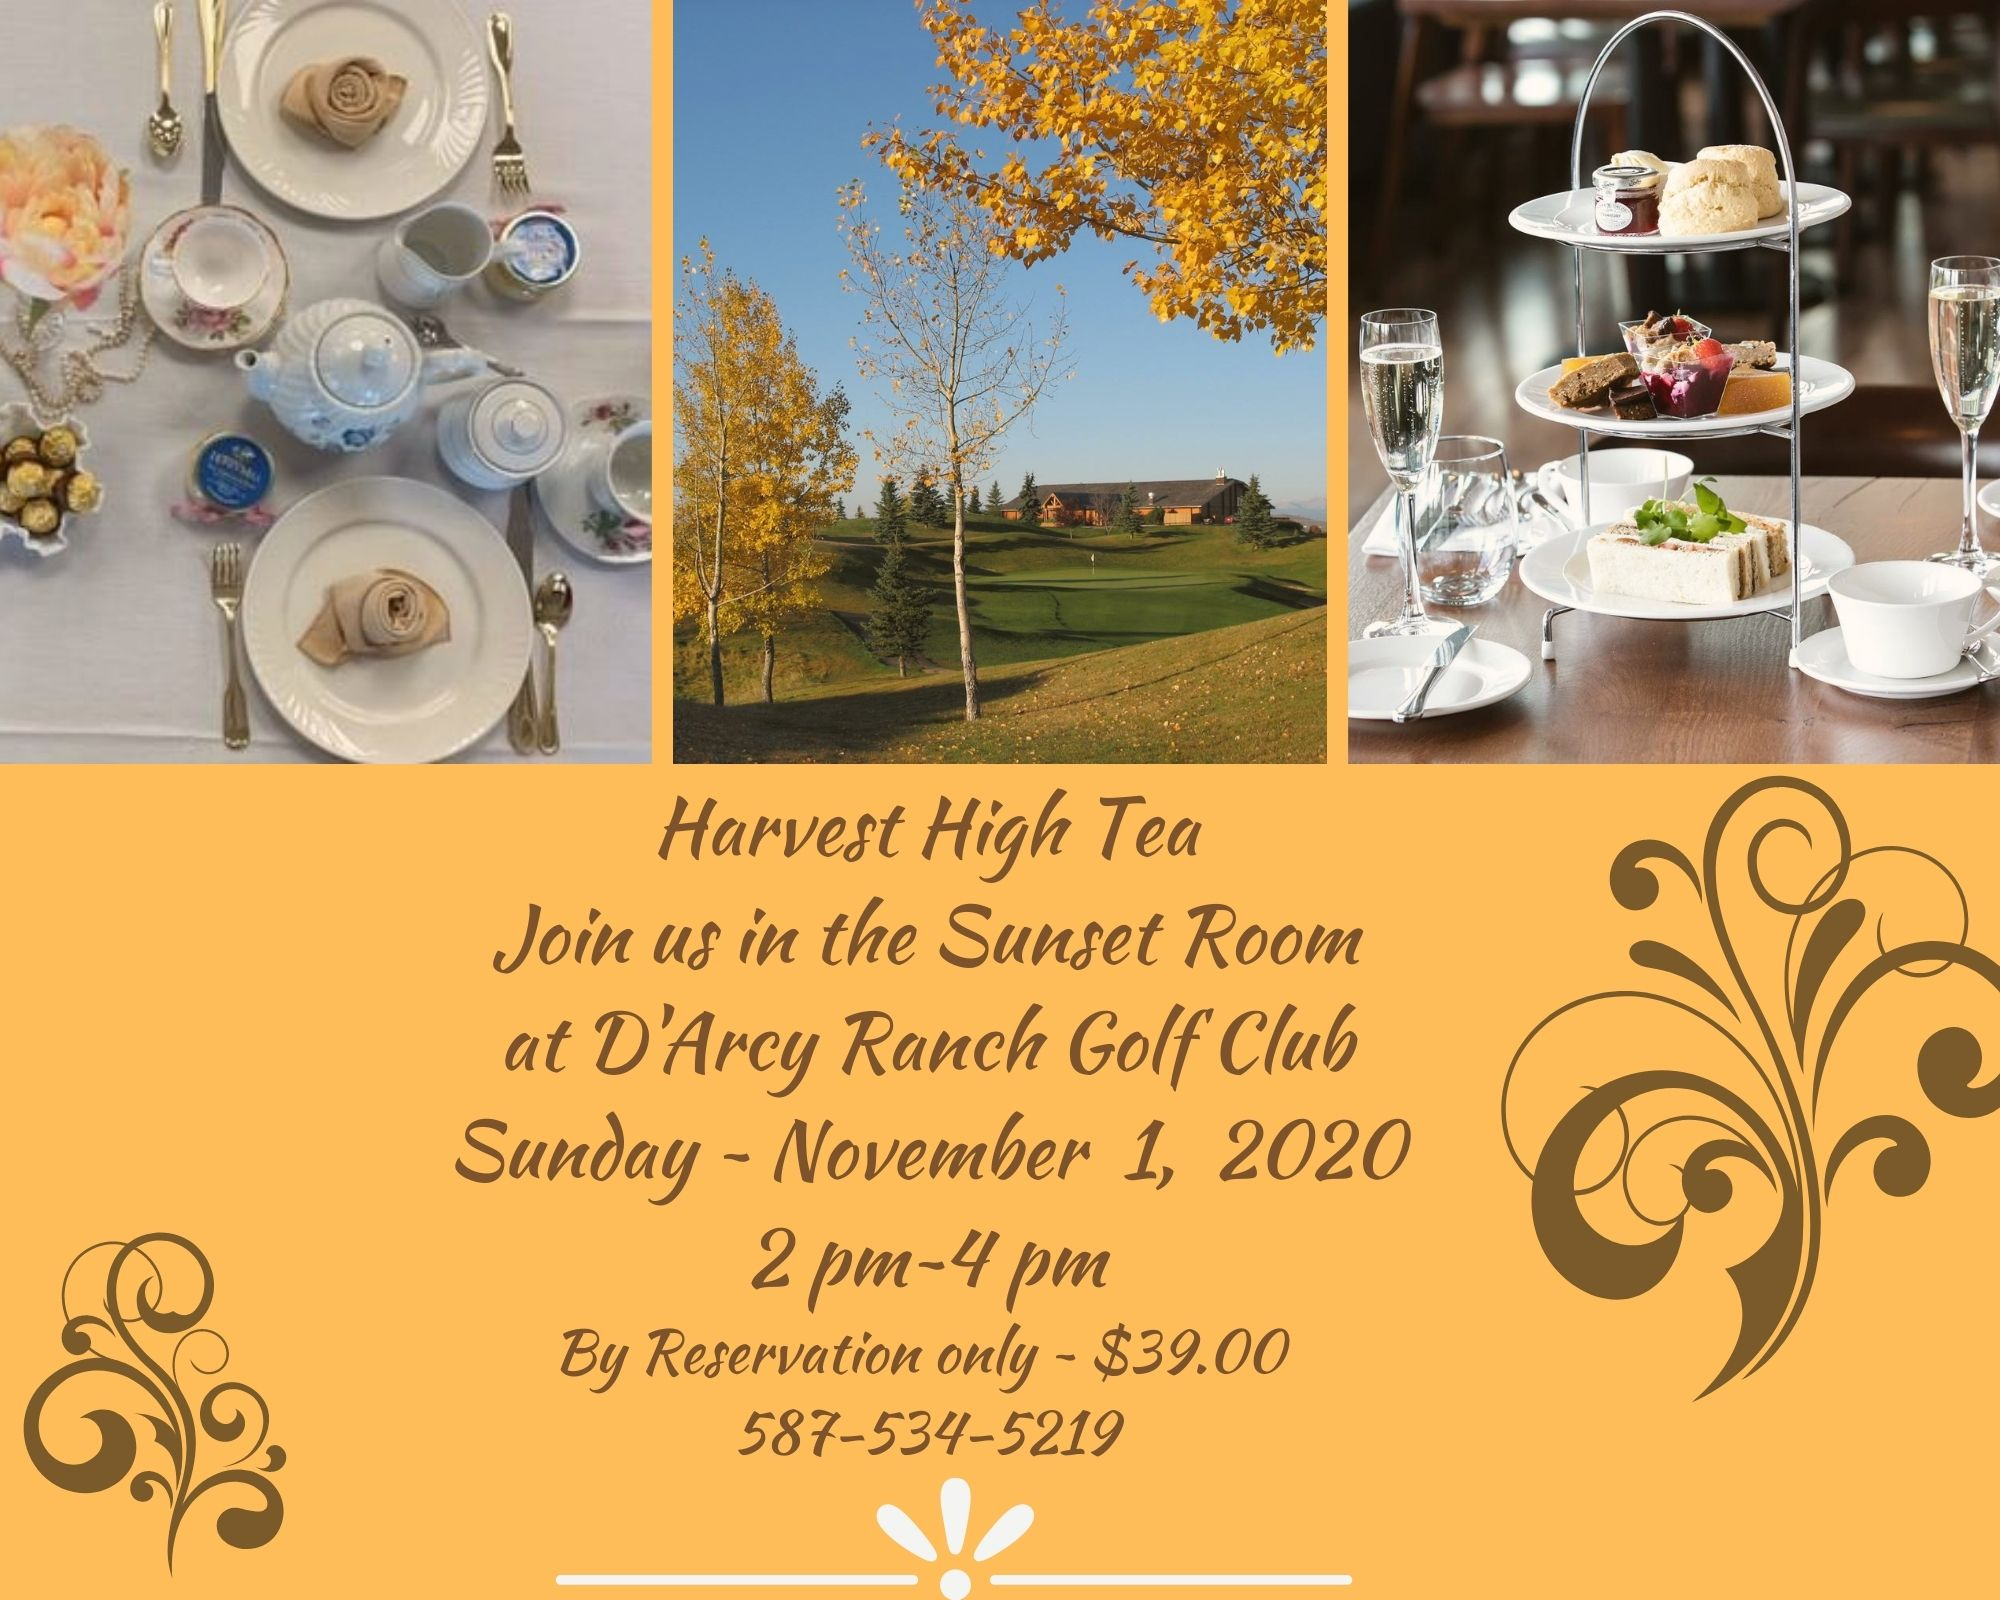 Join Us for Harvest High Tea Nov 1, 2020 For reservations call 587-534-5219